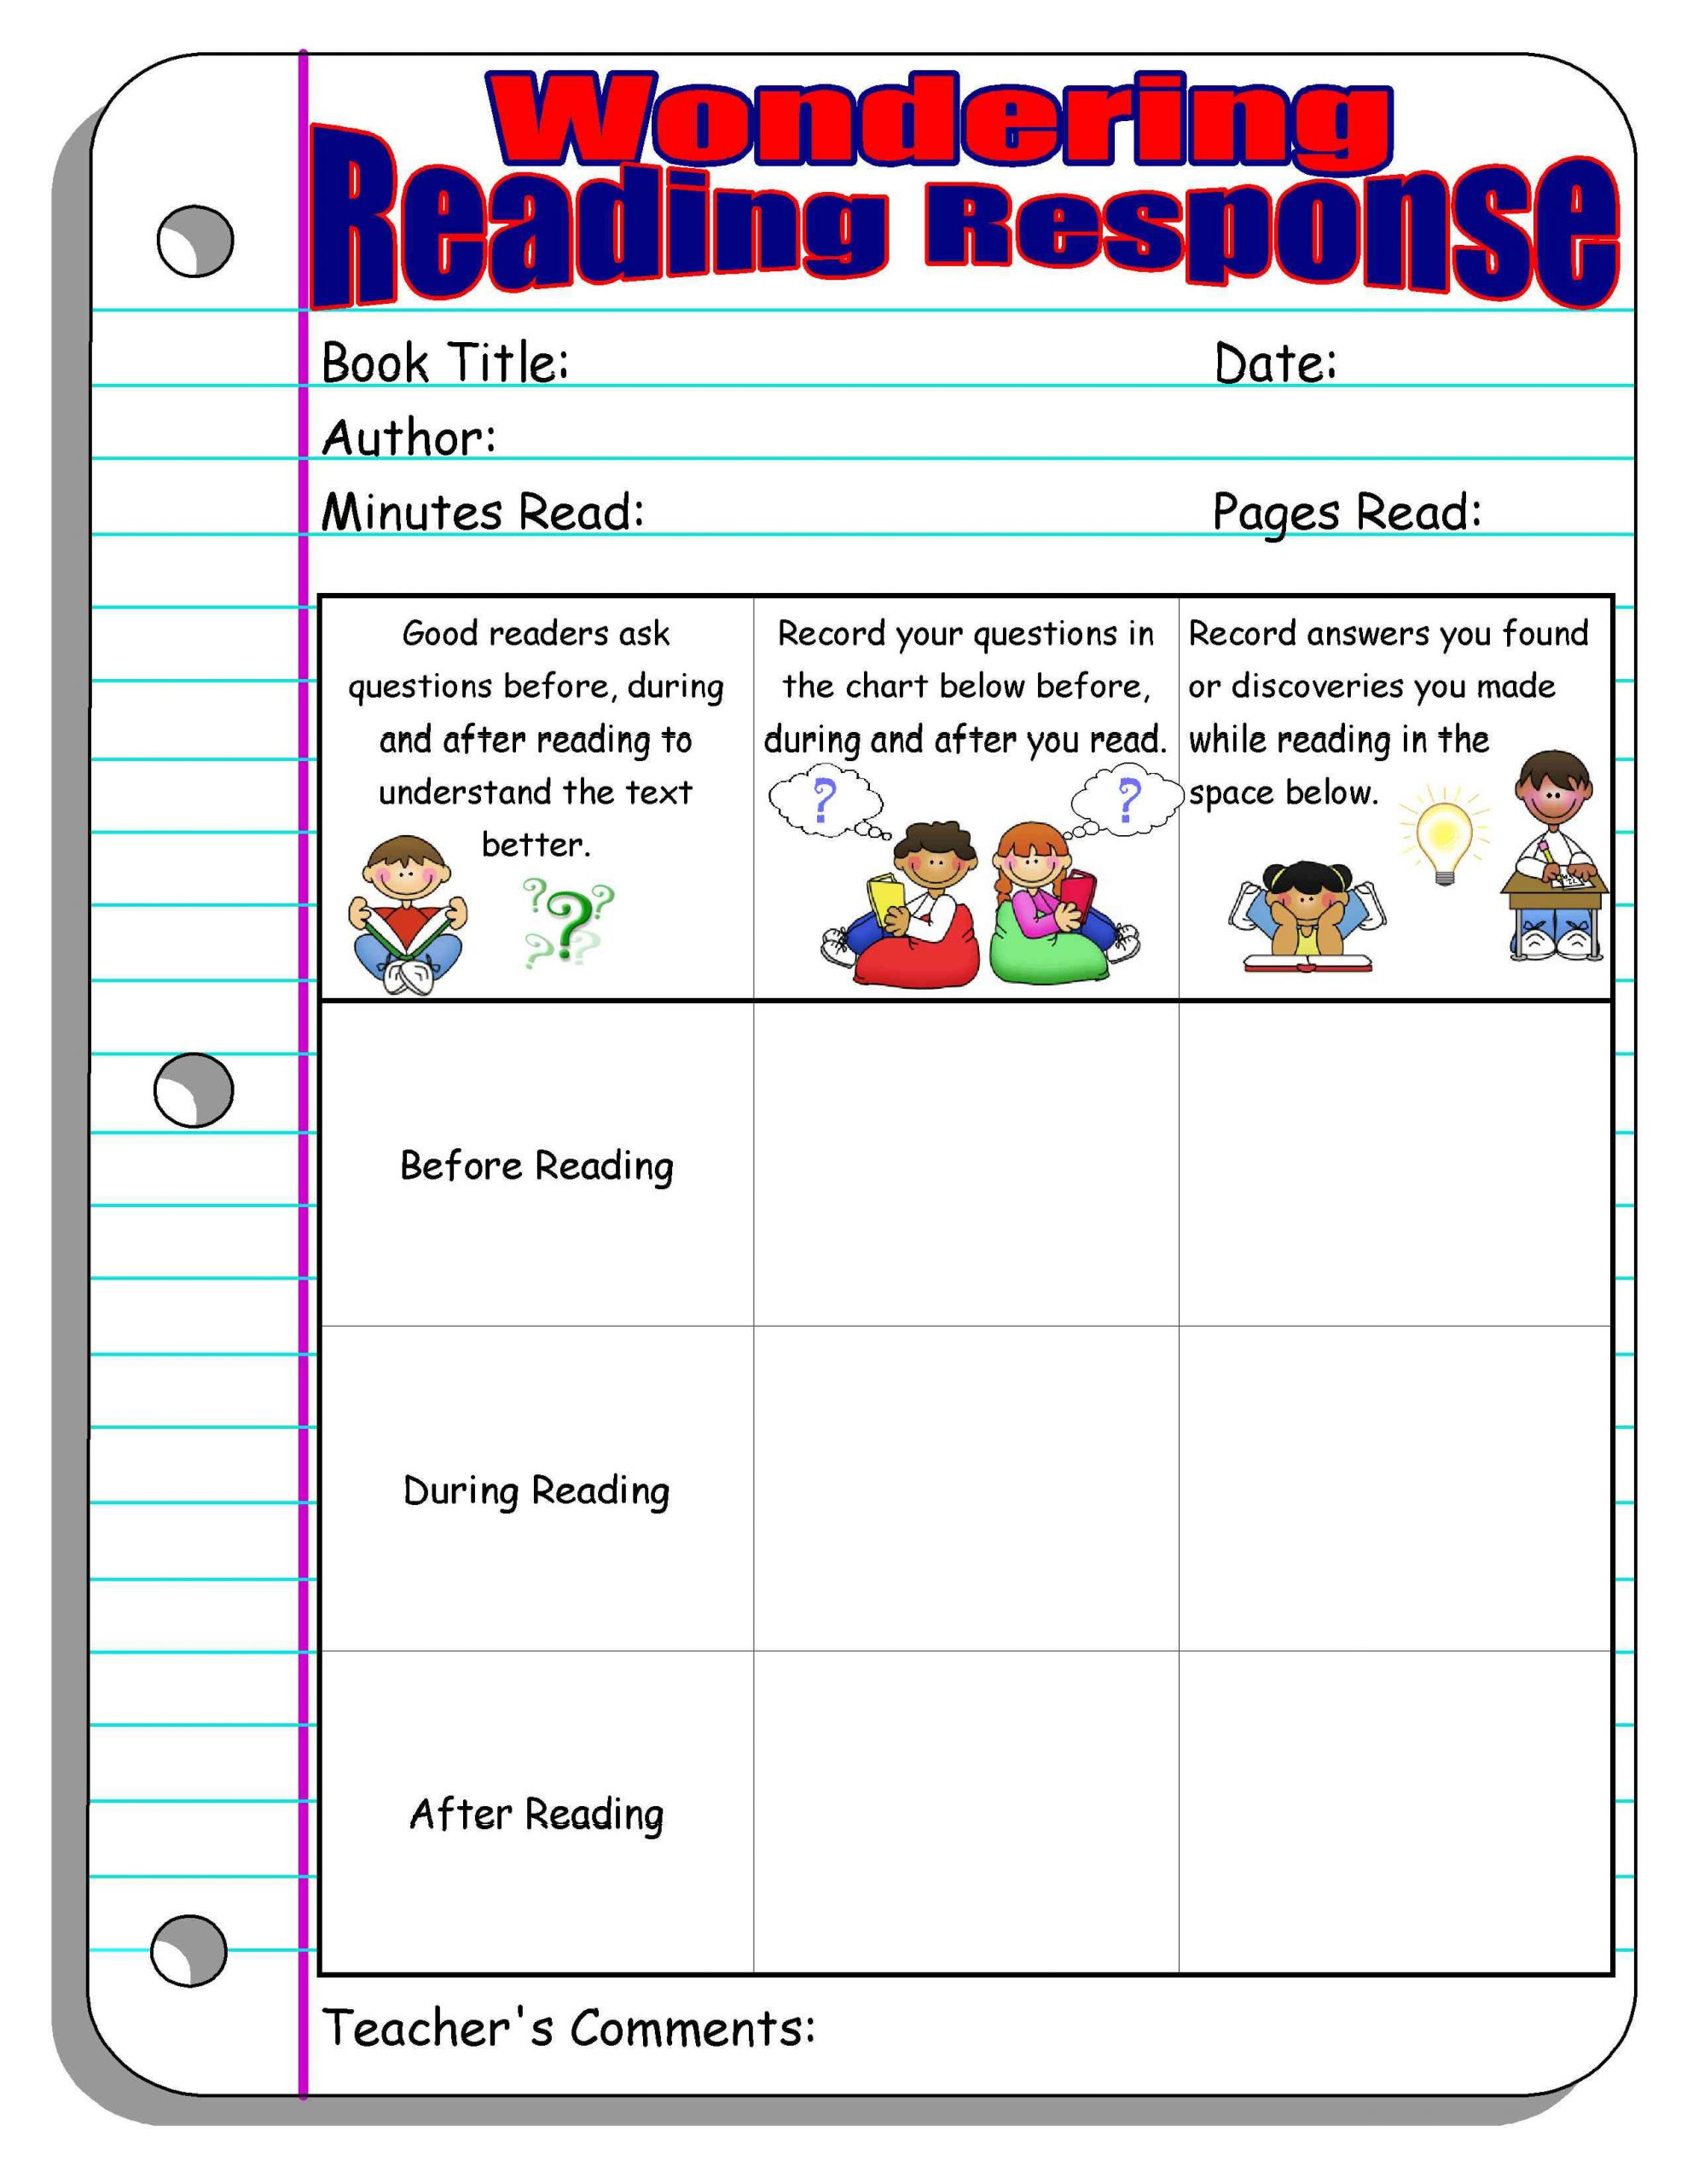 Summarizing Worksheet 3rd Grade Reading Response forms and Graphic organizers